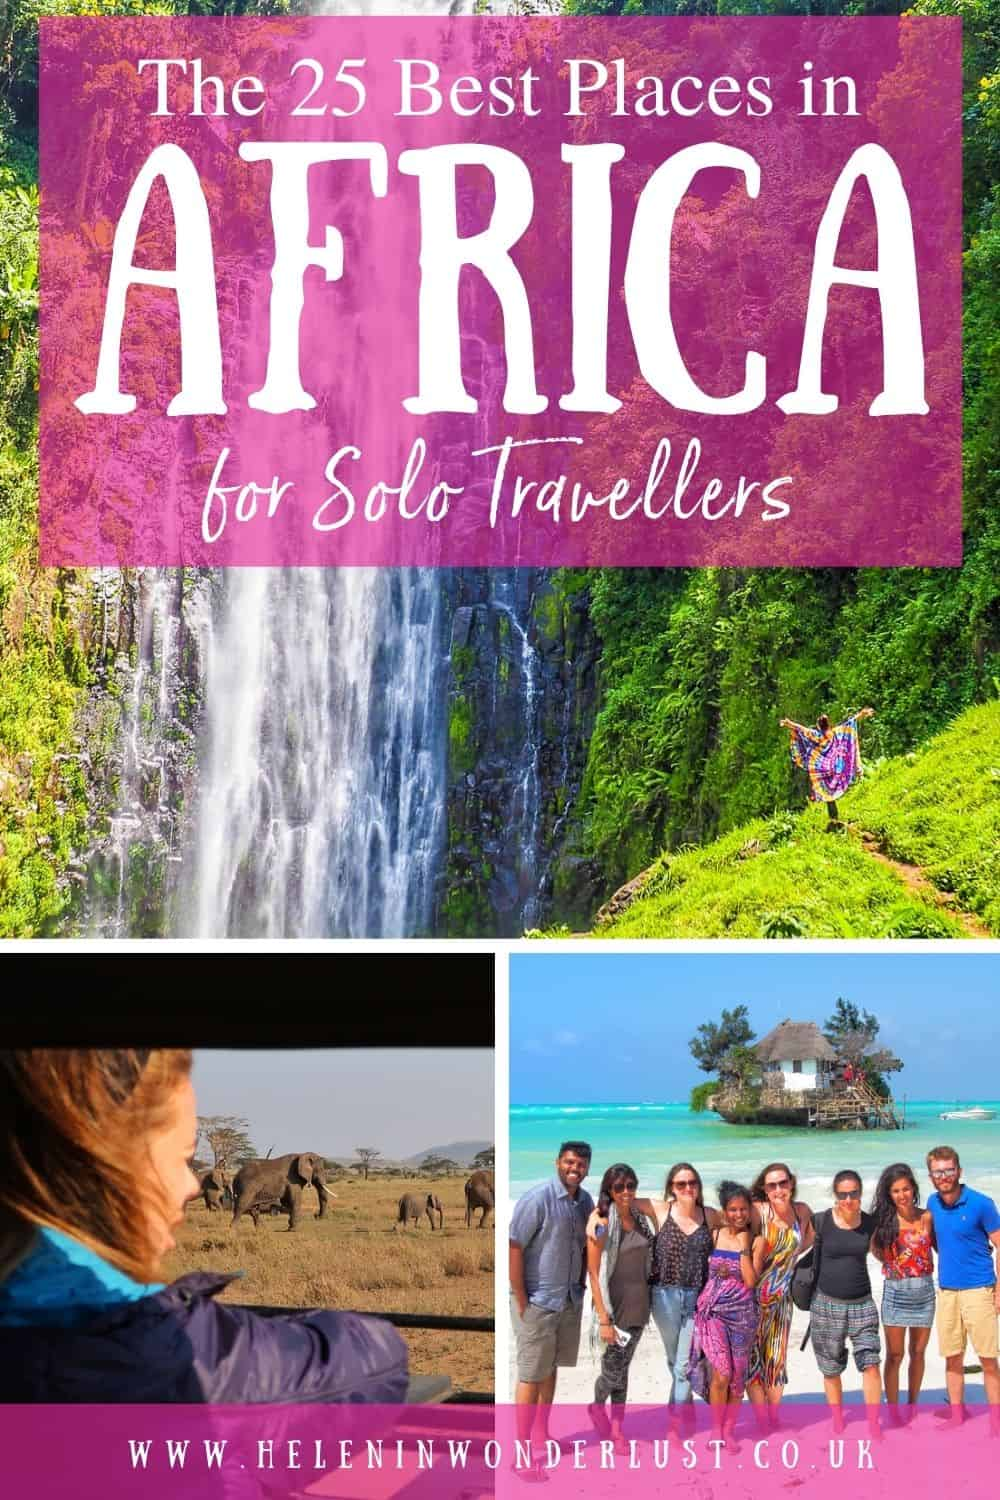 The 25 Best Places in Africa for Solo Travellers